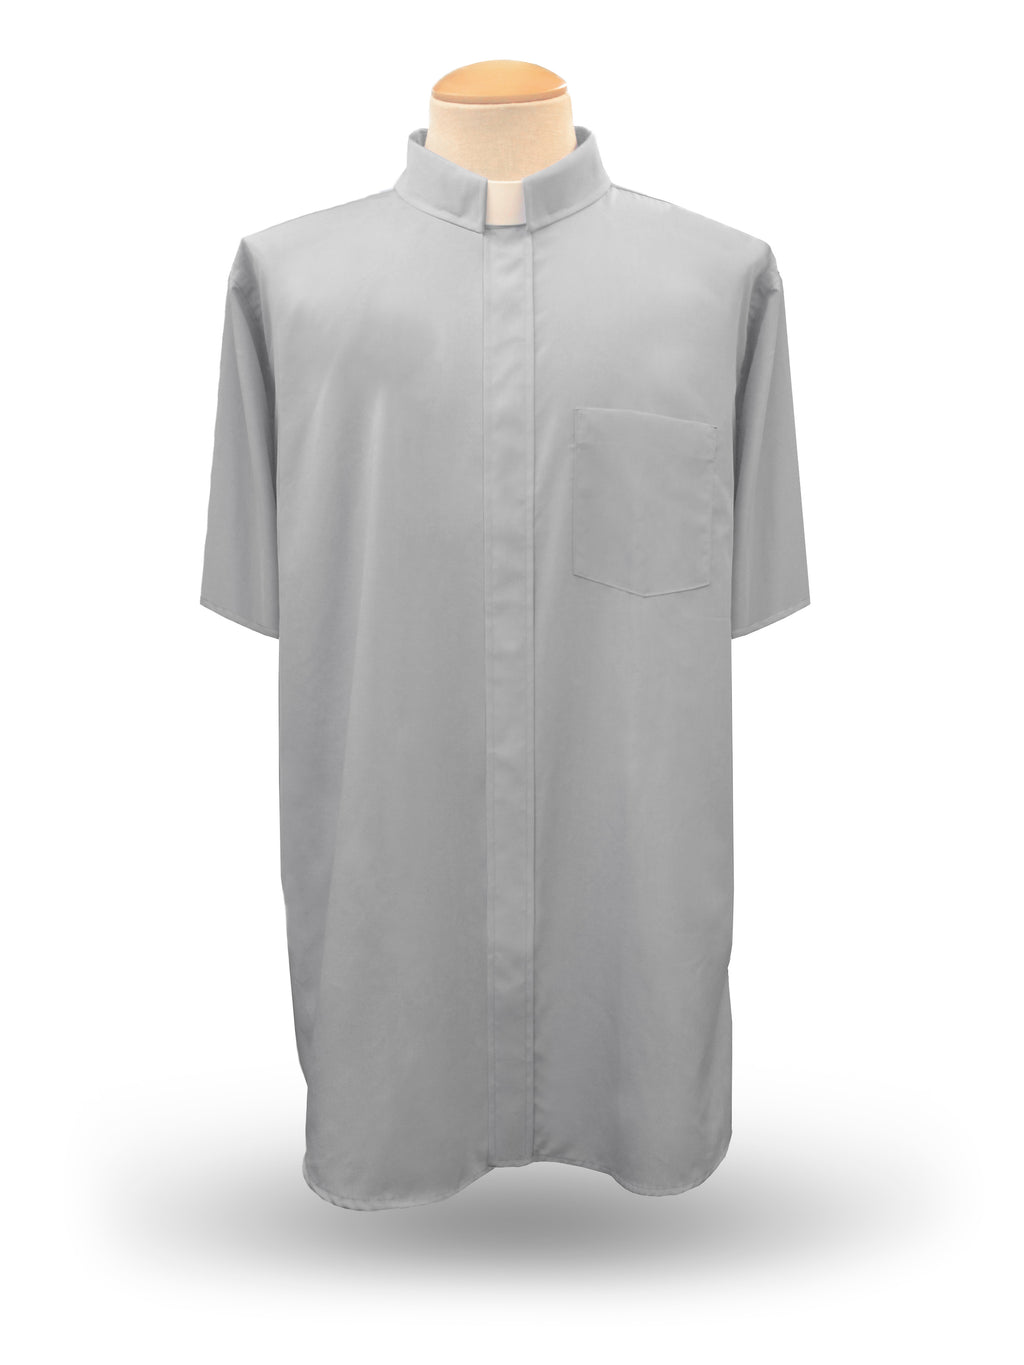 Men's Short Sleeve <br> Tab Collar Clergy Shirt <br> in Grey